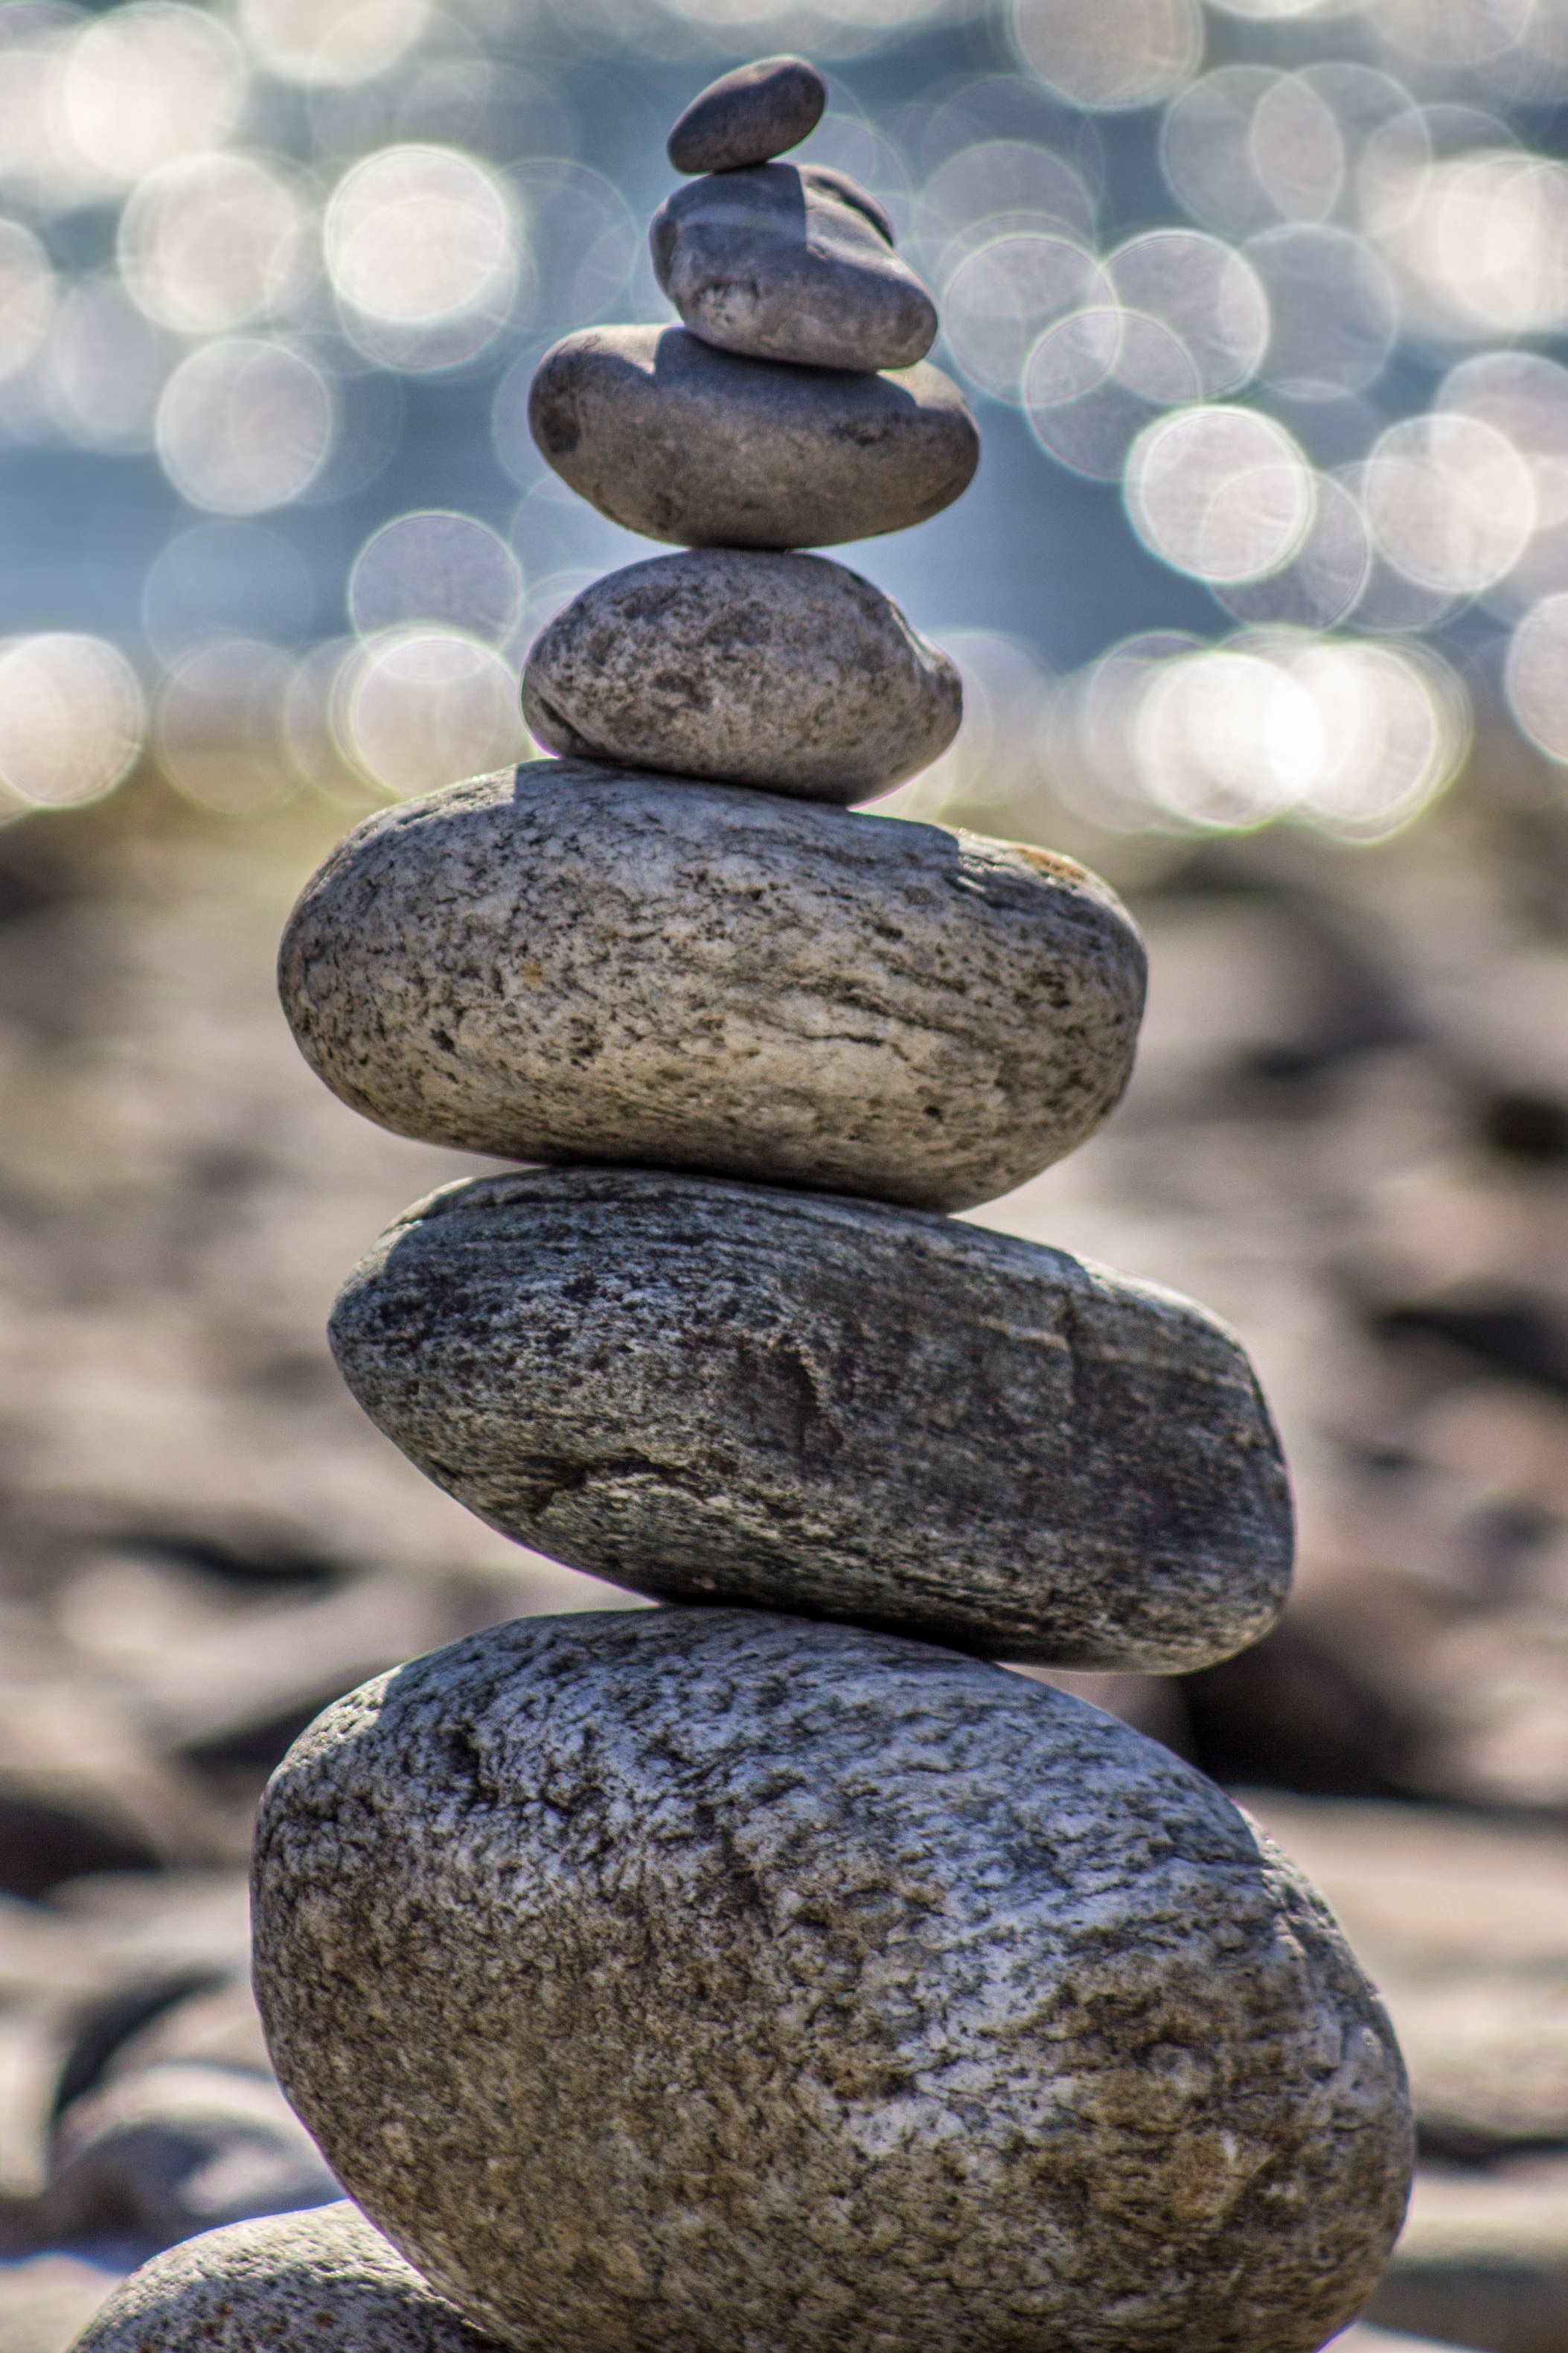 Milestones are well-defined stepping stones on the path to achieving Rocks — smaller, more manageable goals that build toward Rocks.